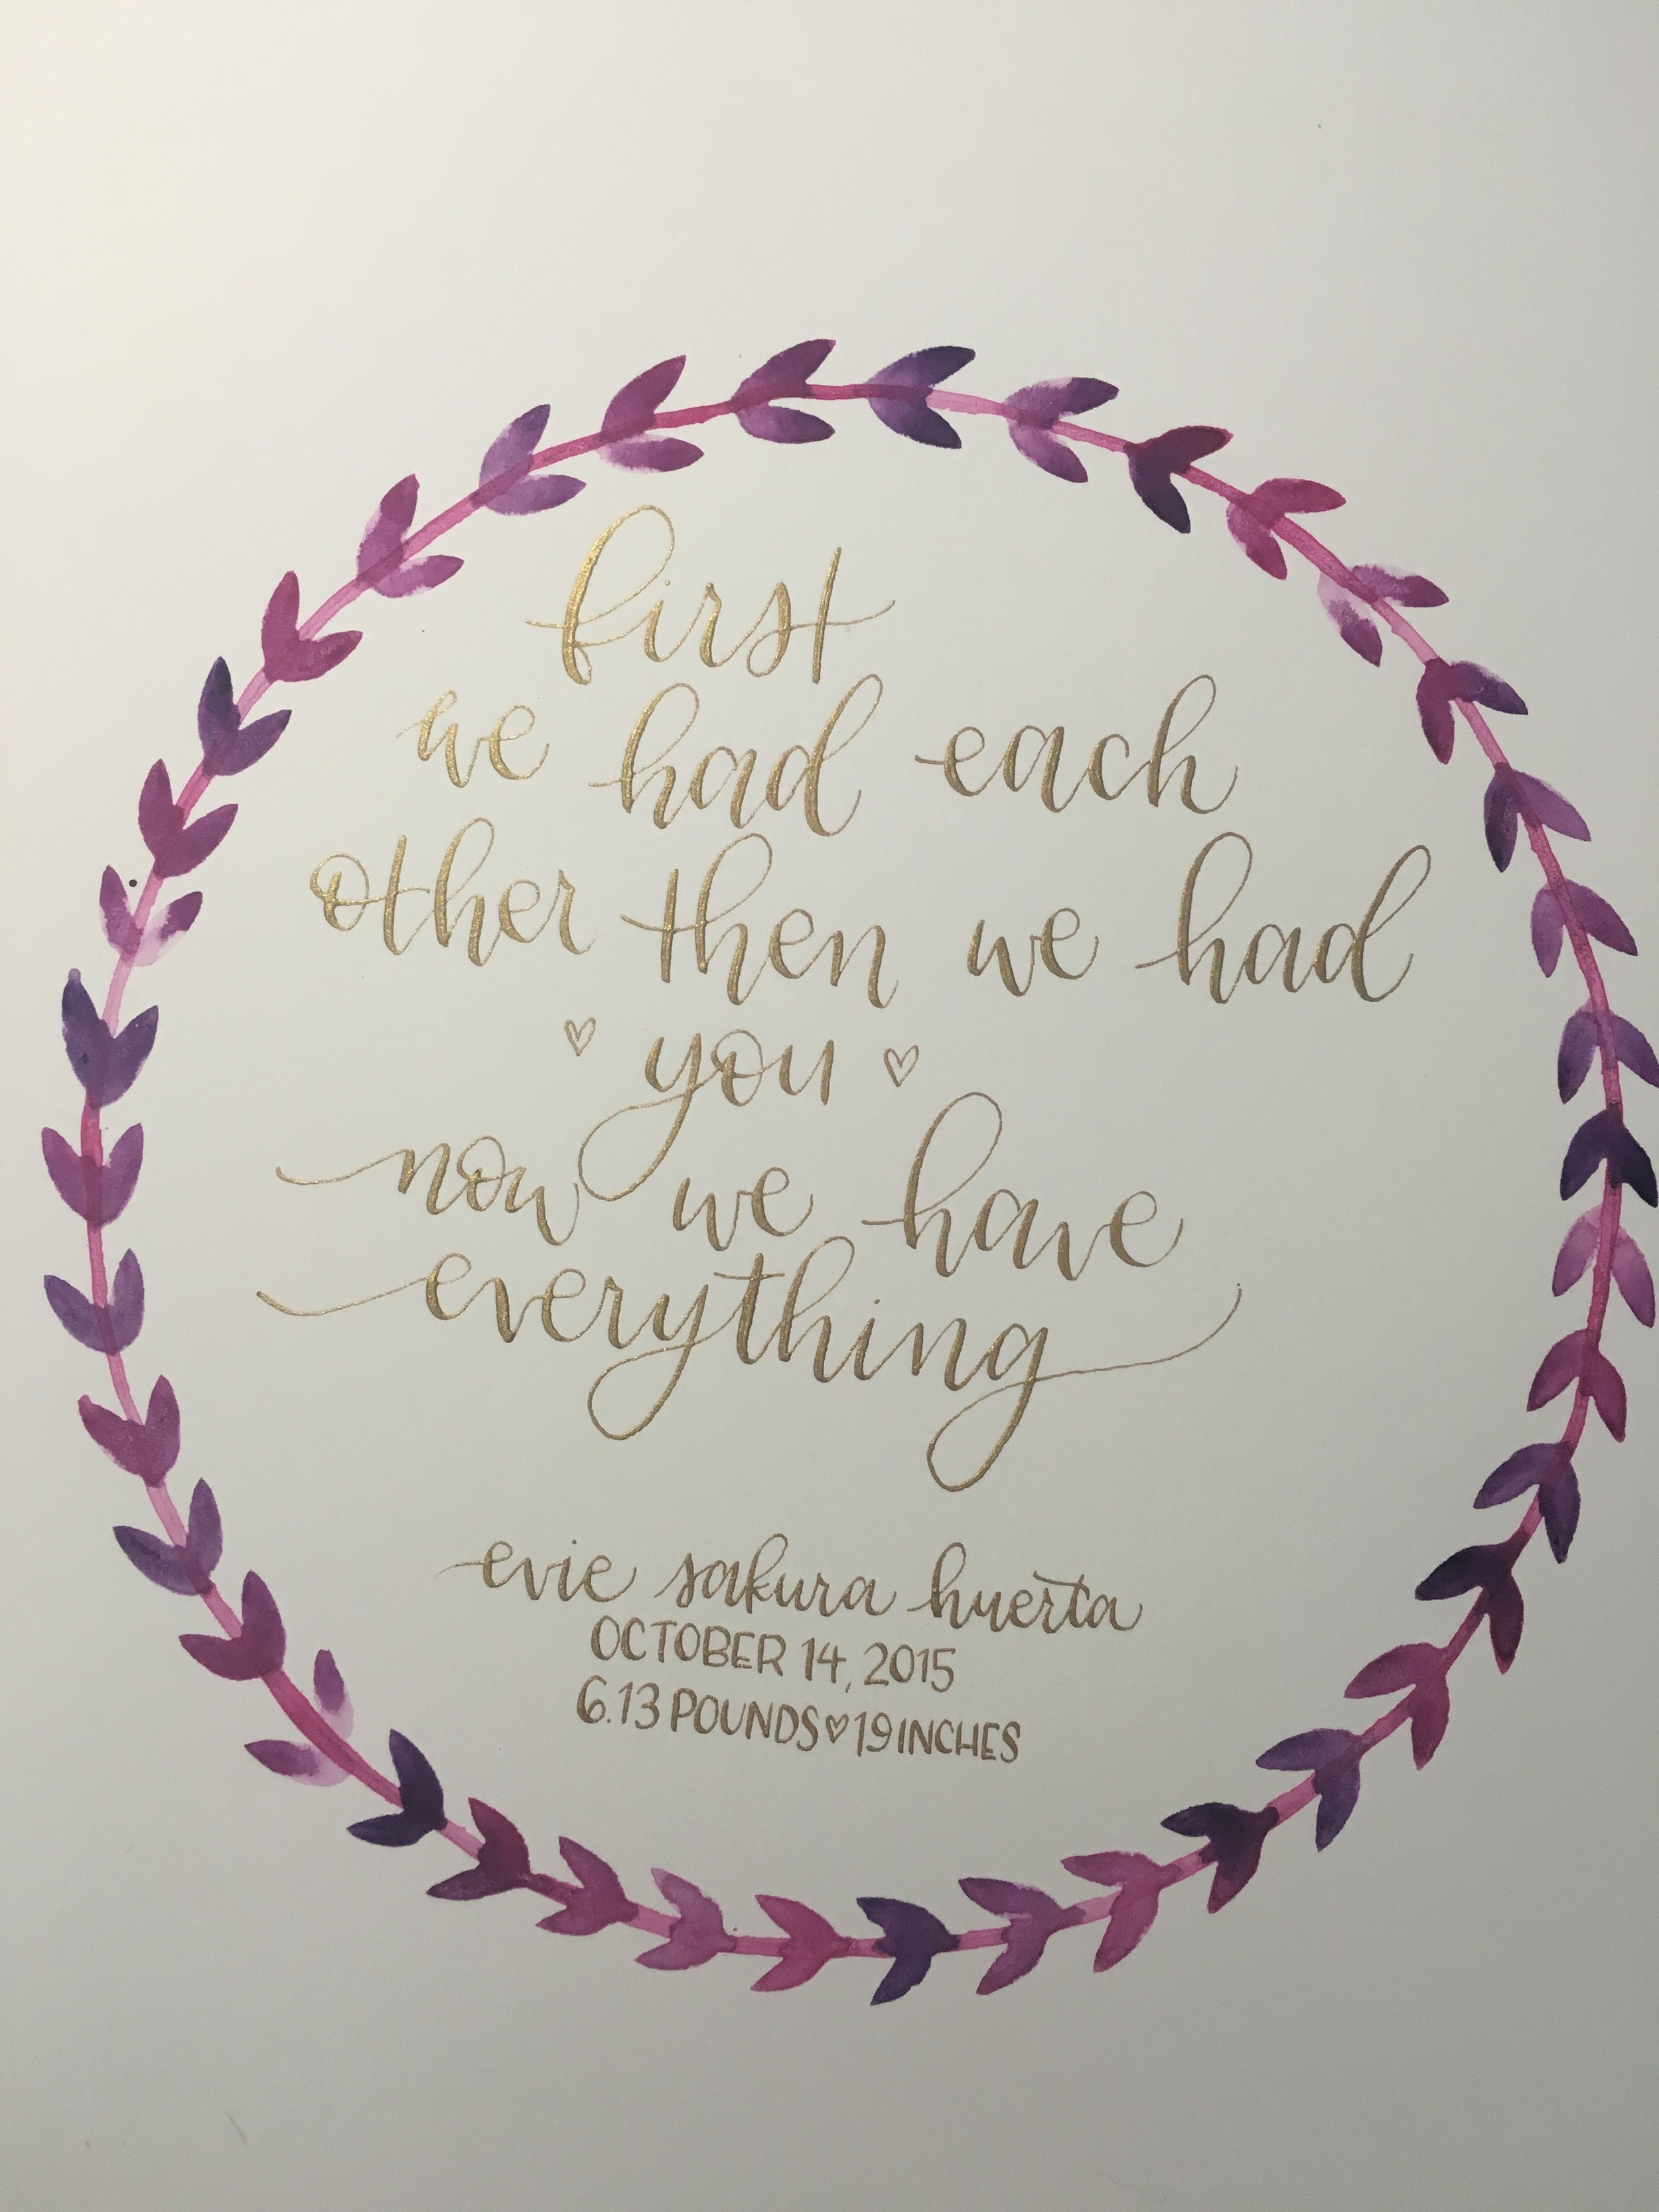 circle wreath with custom calligraphy materials: purple/pink watercolor, gold ink + pointed pen